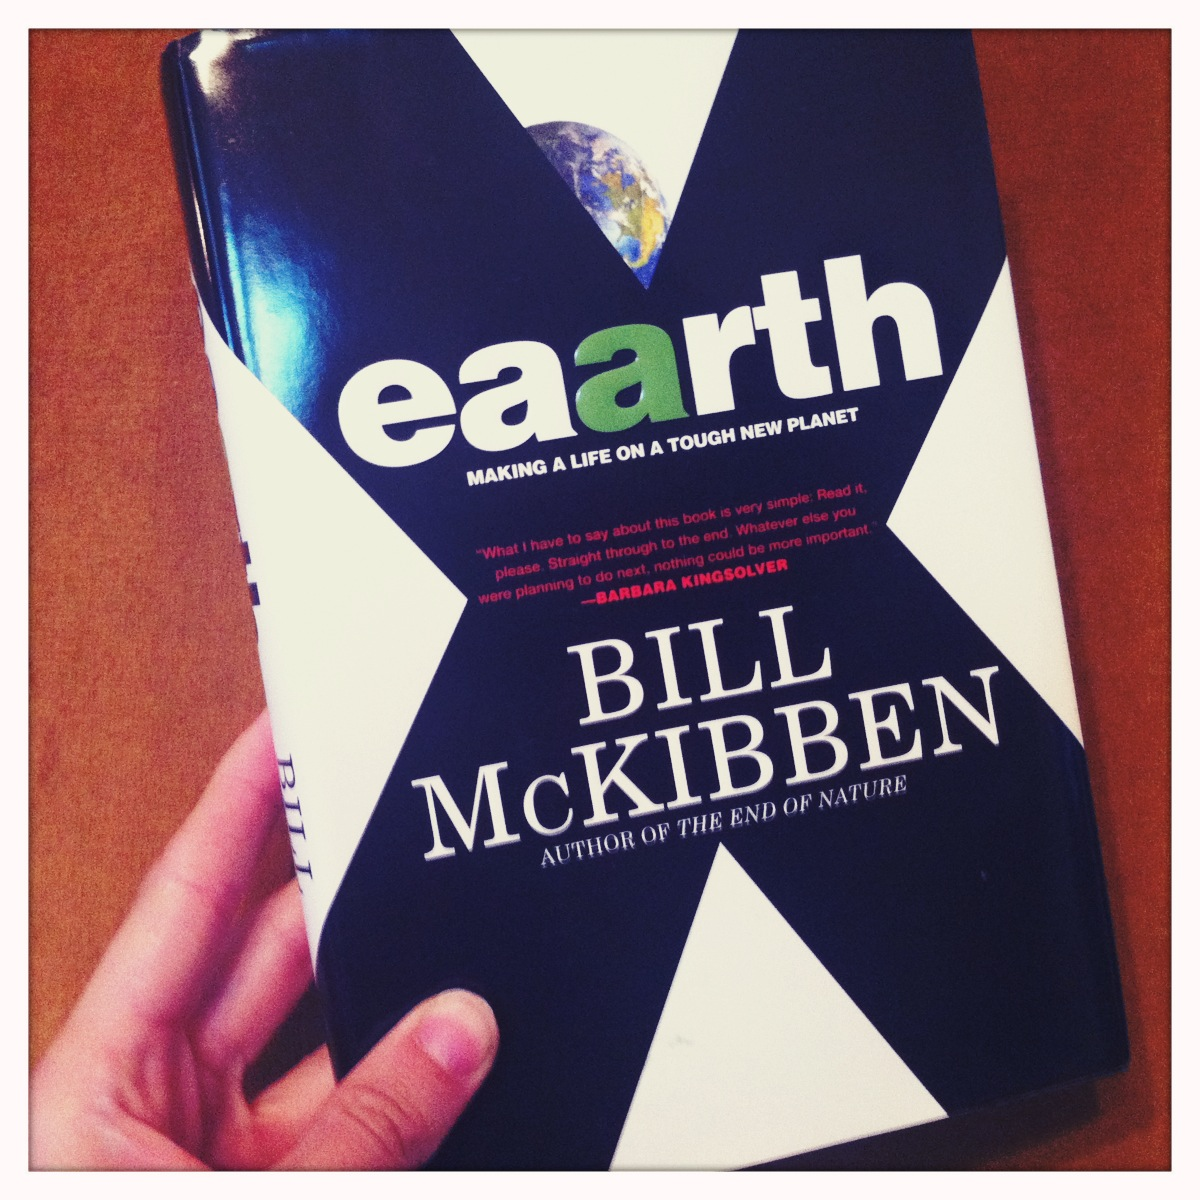 the issues of global warming in eaarth making a life on a tough new planet a book by bill mckibben Eaarth by bill mckibben eaarth praise for eaarth interviews reviews  nature,  bill mckibben offered one of the earliest warnings about global warming  we' ve created, in very short order, a new planet, still recognizable but  this  monumental book, probably his greatest, may restore your faith in the future, with  us in it.